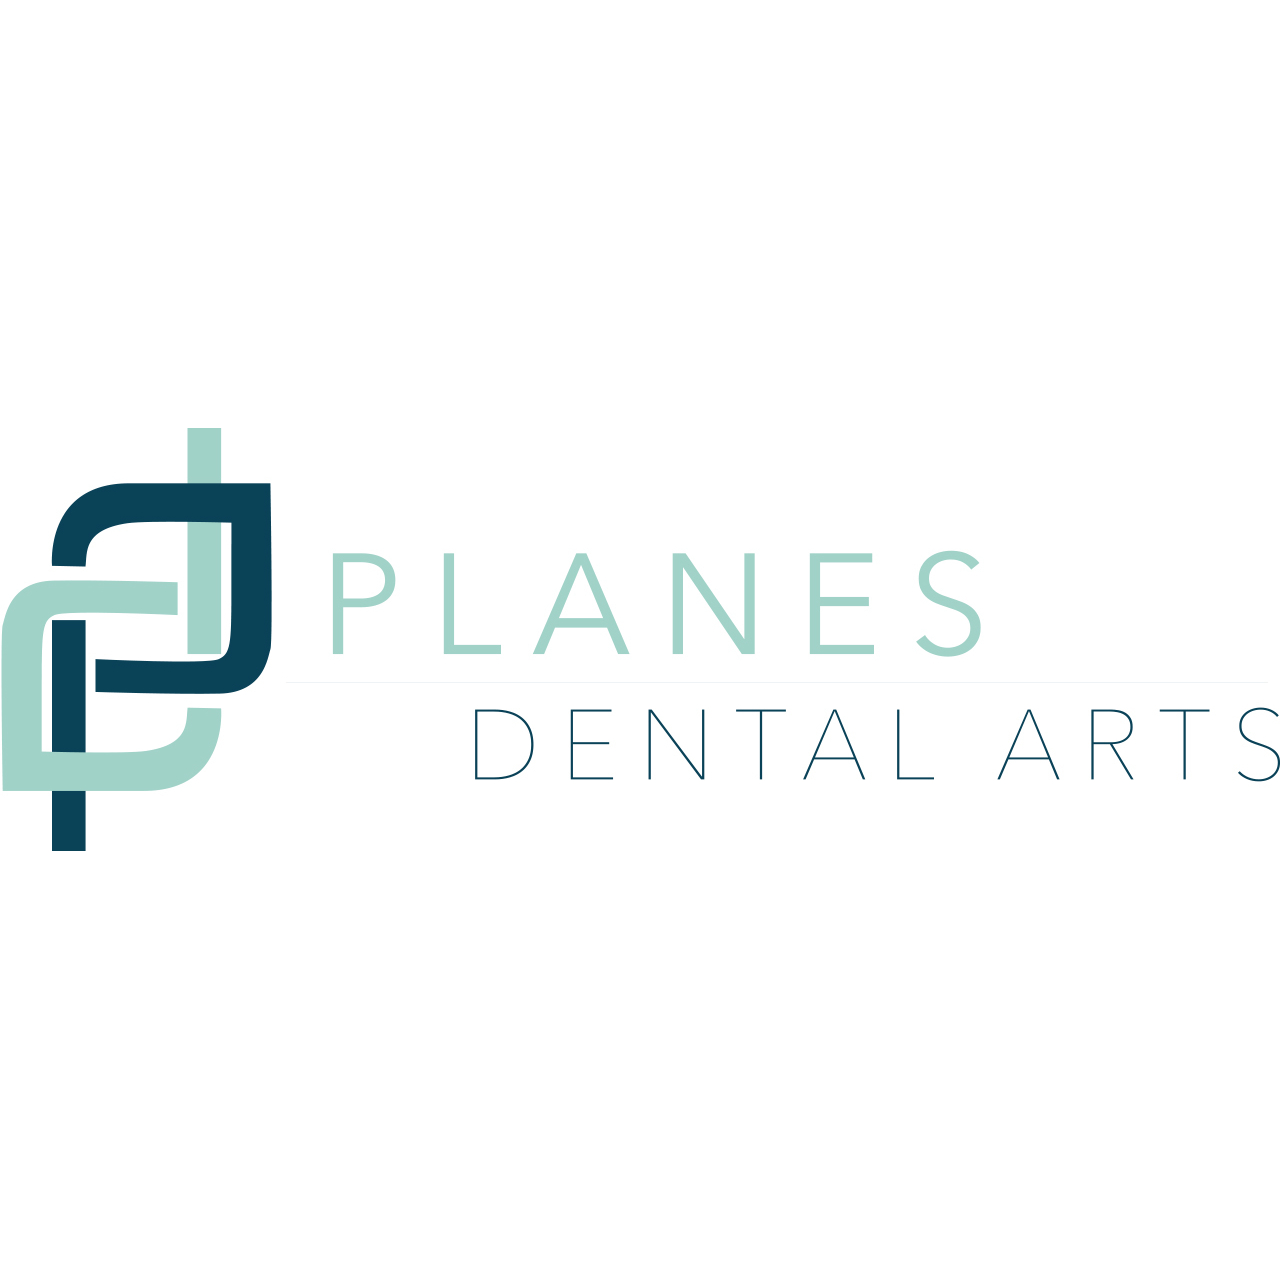 Planes Dental Arts - Port St Lucie